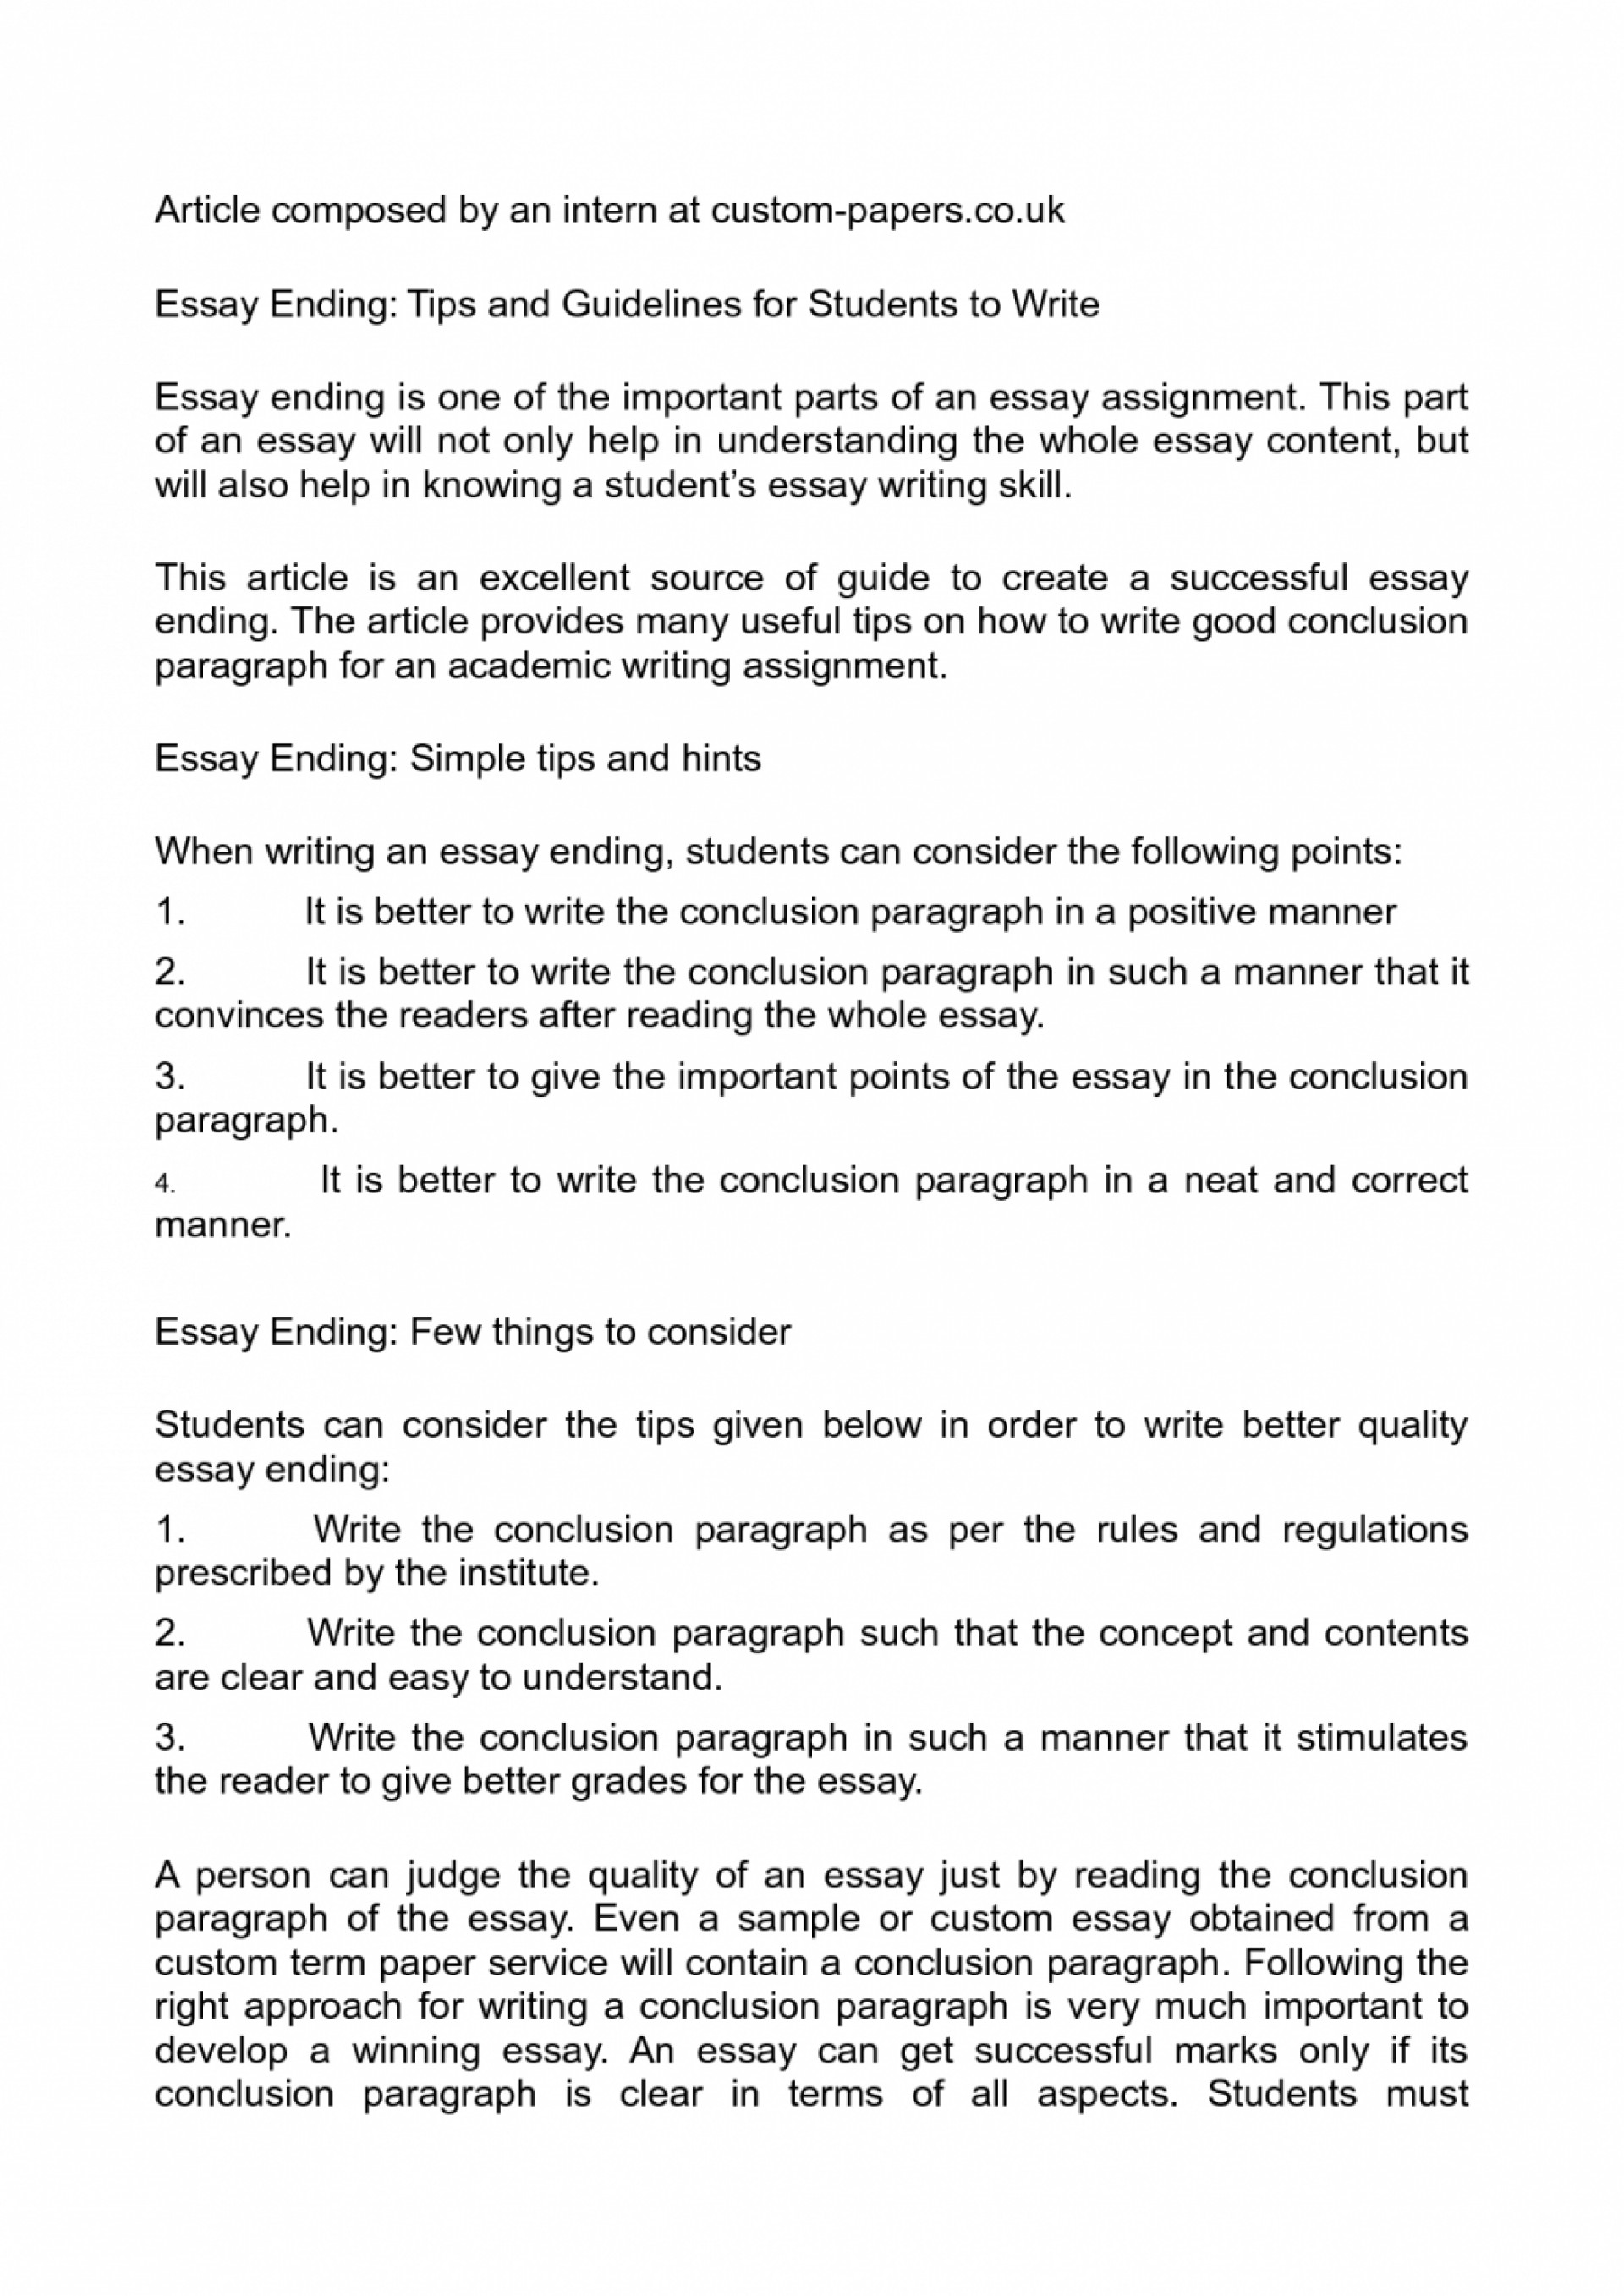 013 Good Ways To End An Essay Example Ending Is It Okay With Question Pzwnx My Wrong Outstanding What's The Best Way What A Argumentative College 1920